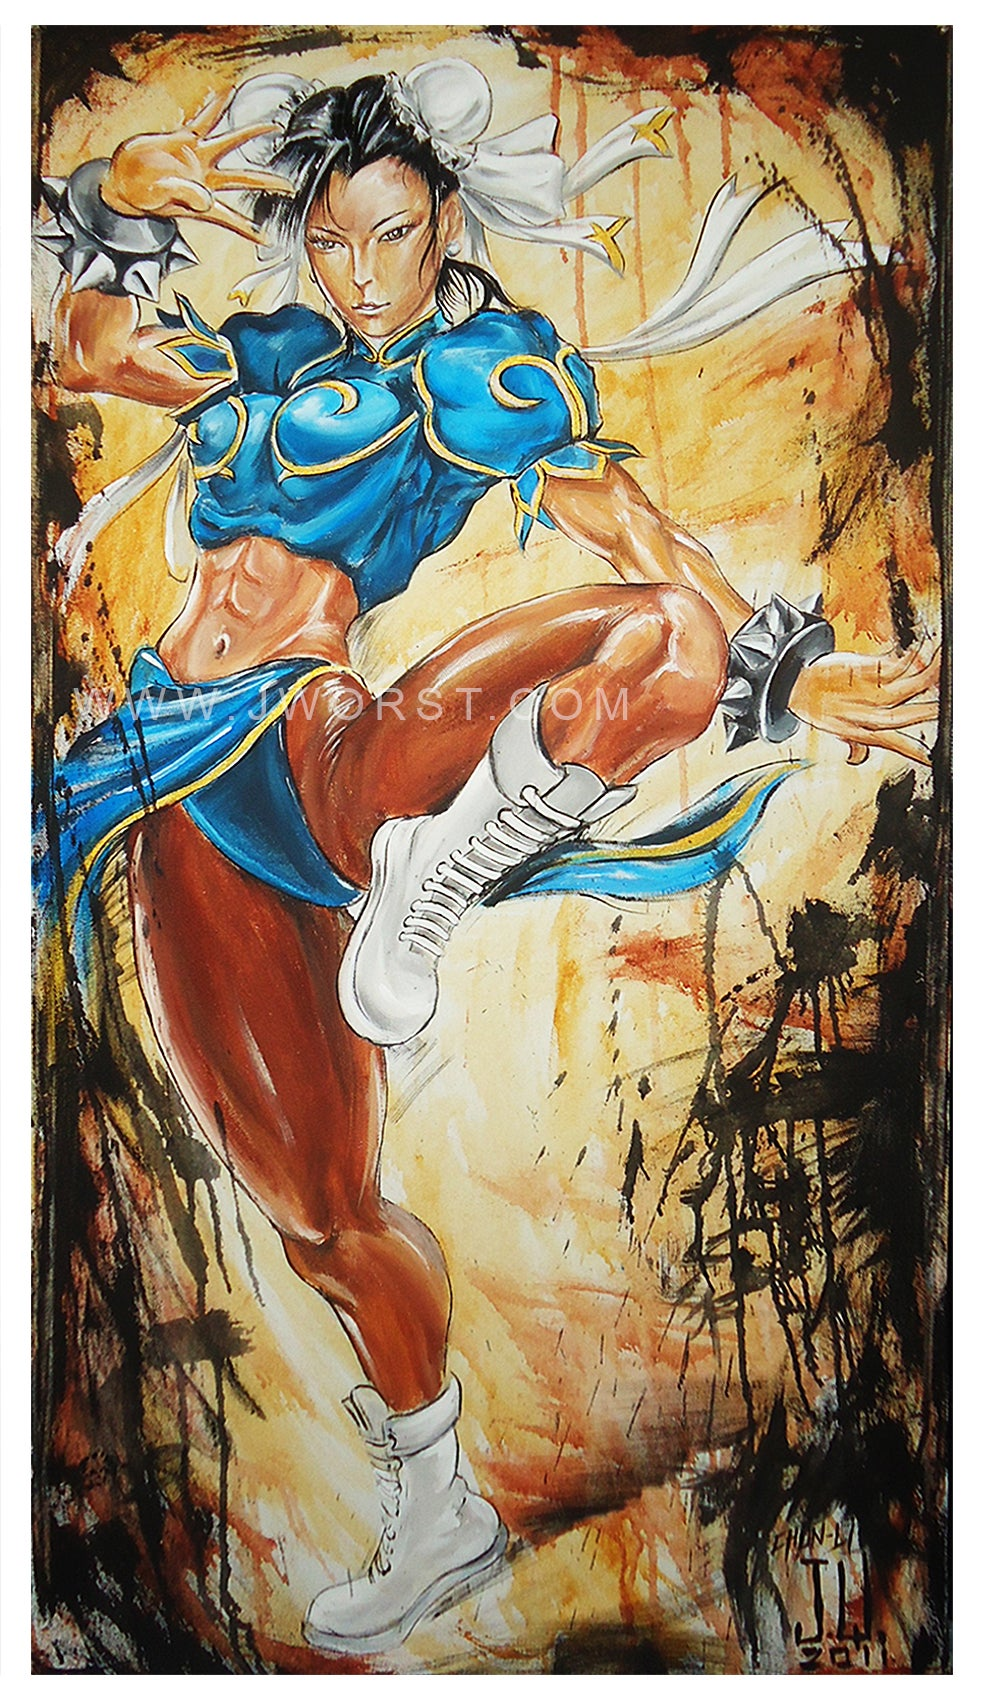 Image of JEREMY WORST Chun Li Sexy girl Artwork Fine Art Print anime fanime momocon dreamhack dragoncon